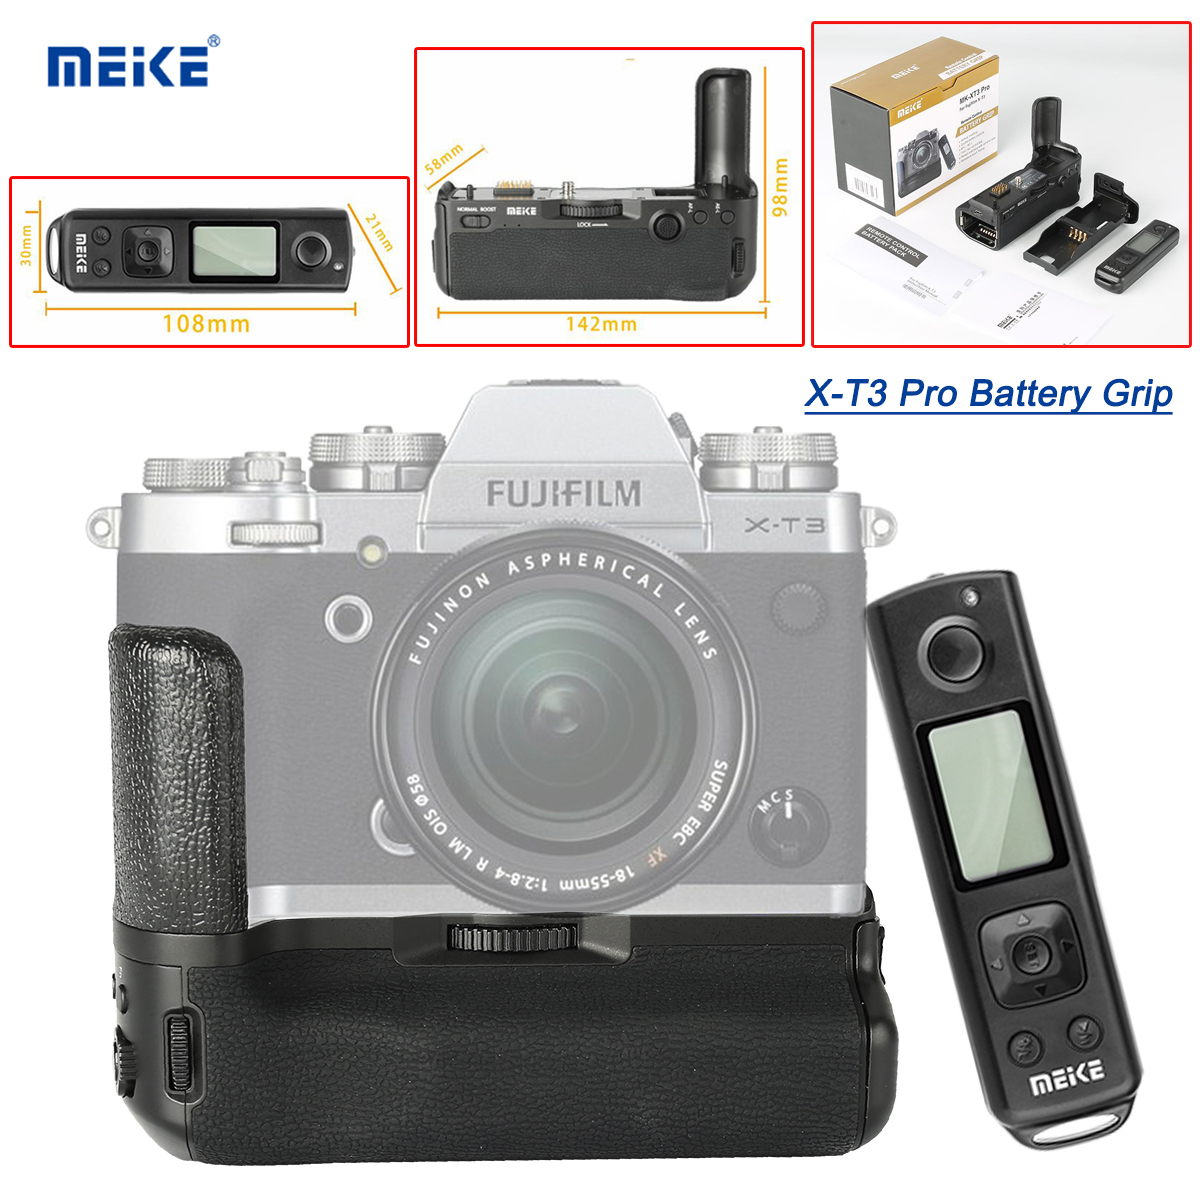 Meike MK-XT3 Pro Battery Grip For Fujifilm Fuji XT3 X-T3 X T3 Camera Holder Handle Grip With Wireless Remote NOT Include Bettery